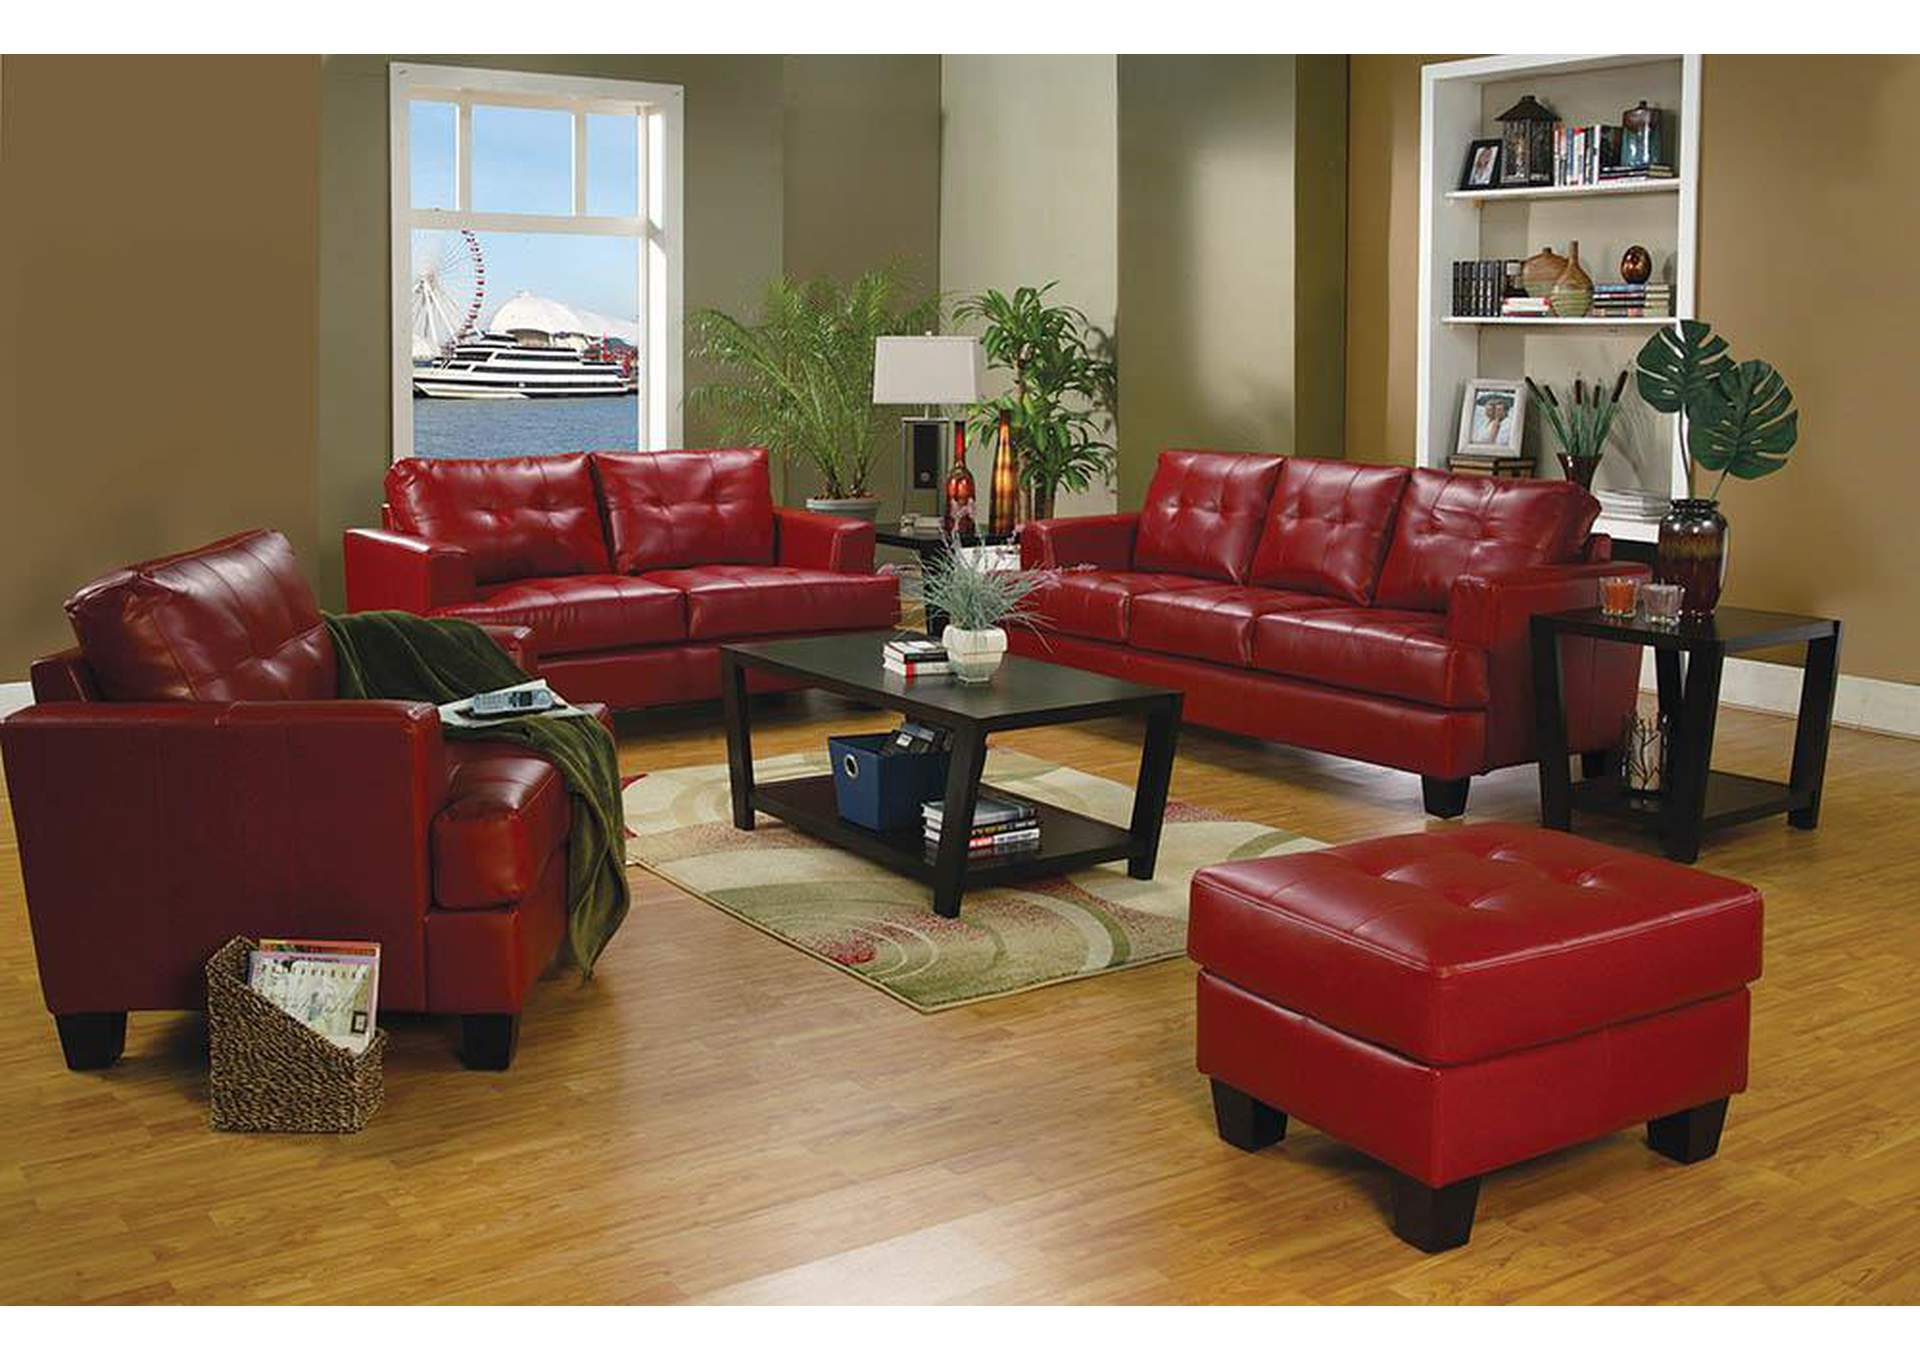 Furniture 4 Less Outlet Samuel Red Sofa